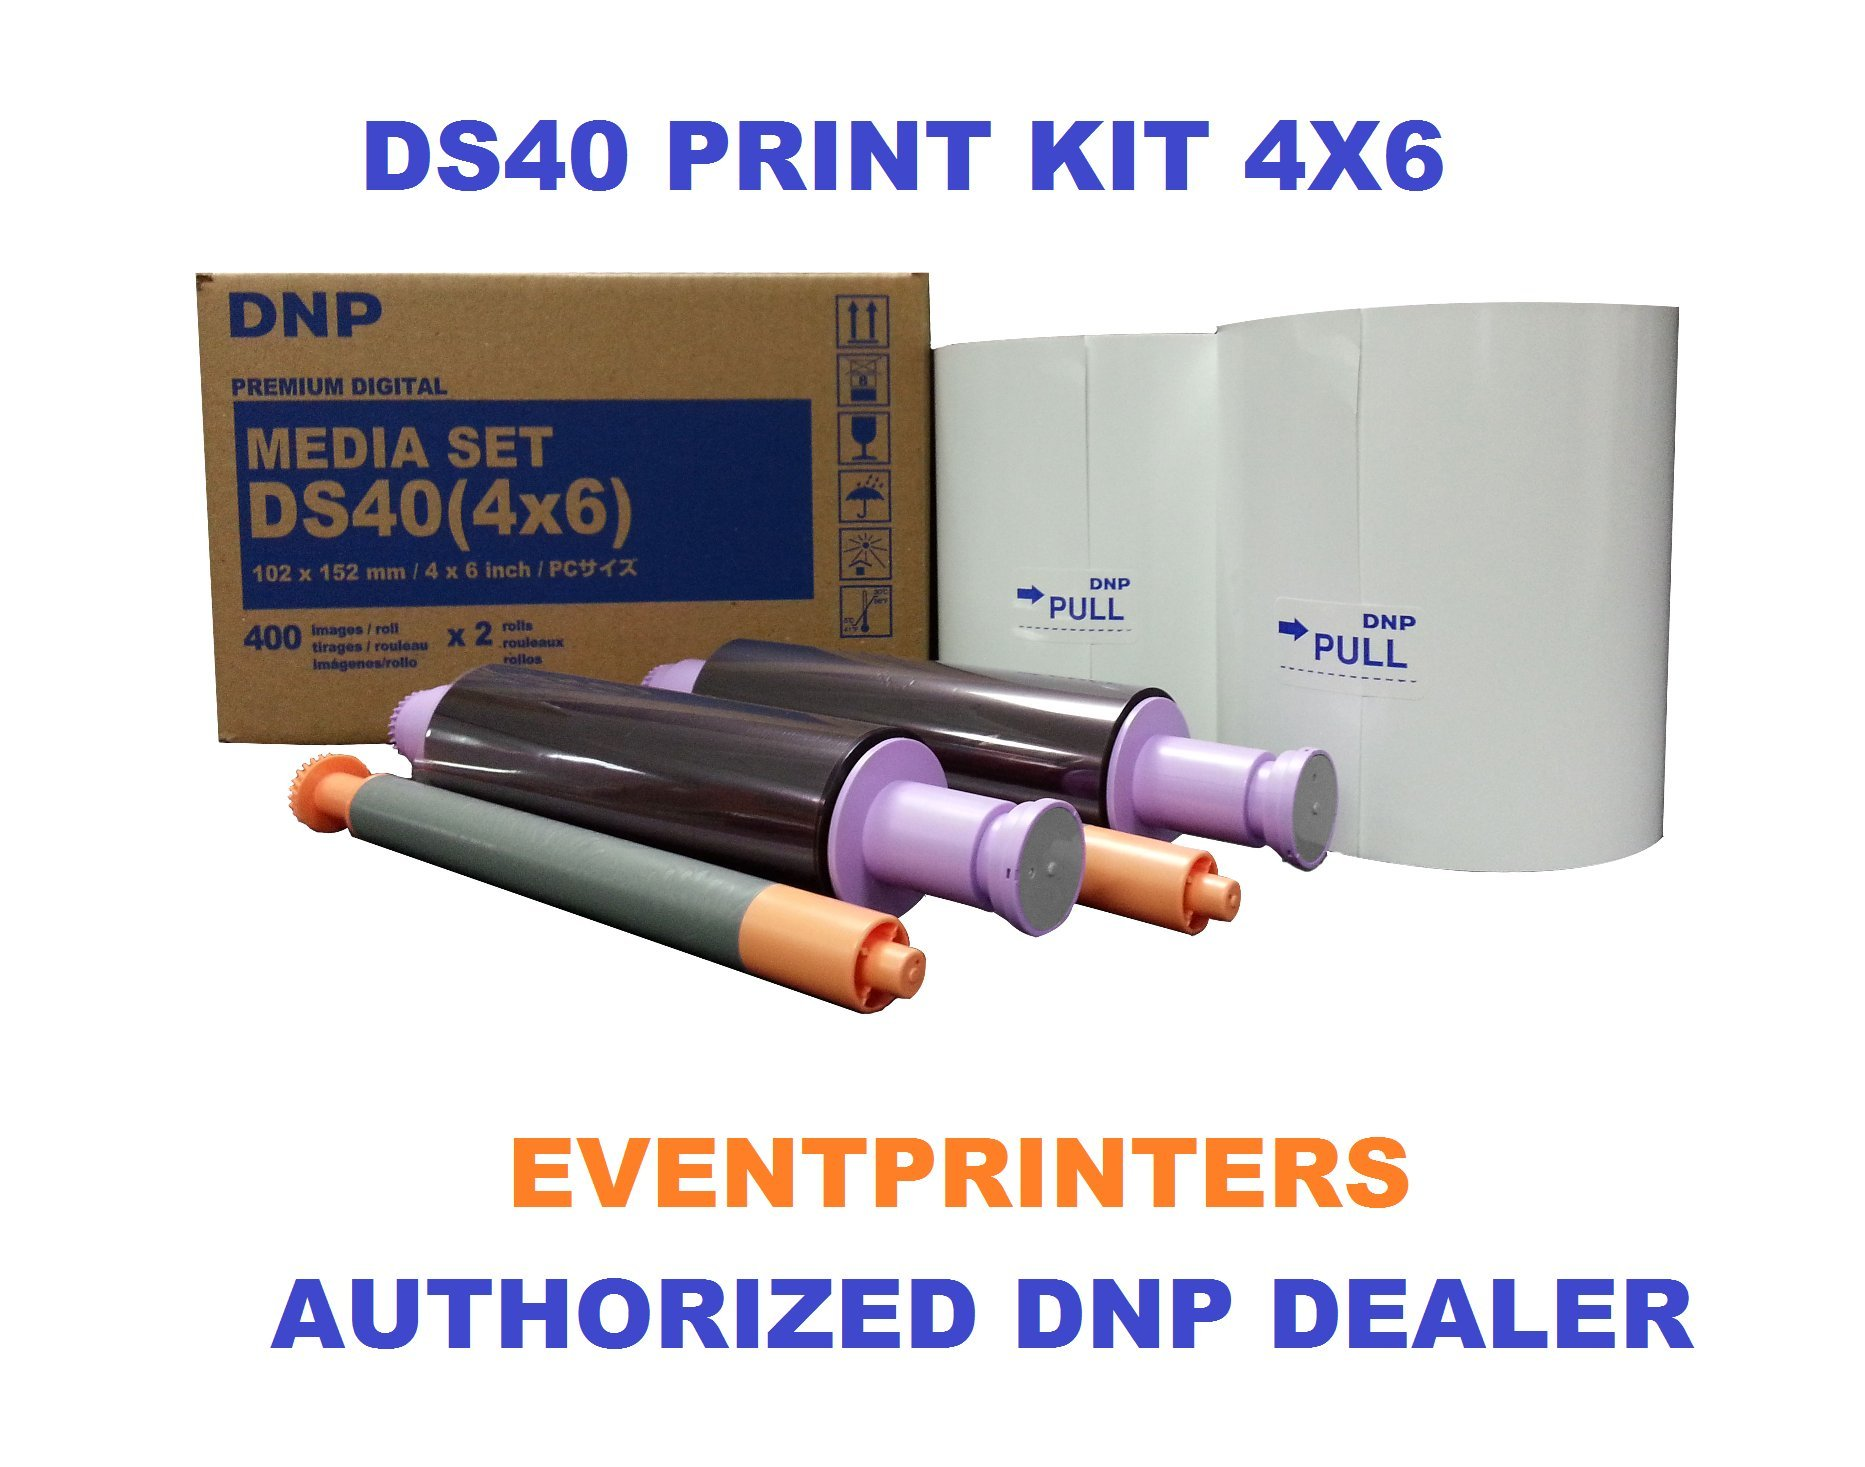 DS40 4x6'' Print Pack for use with DNP DS40 printer (800 total prints). Paper & Ribbon media kit. COMES WITH FREE SAMPLES OF OUR BEST SELLING PHOTO FOLDERS (EVENTPRINTERS BRAND).